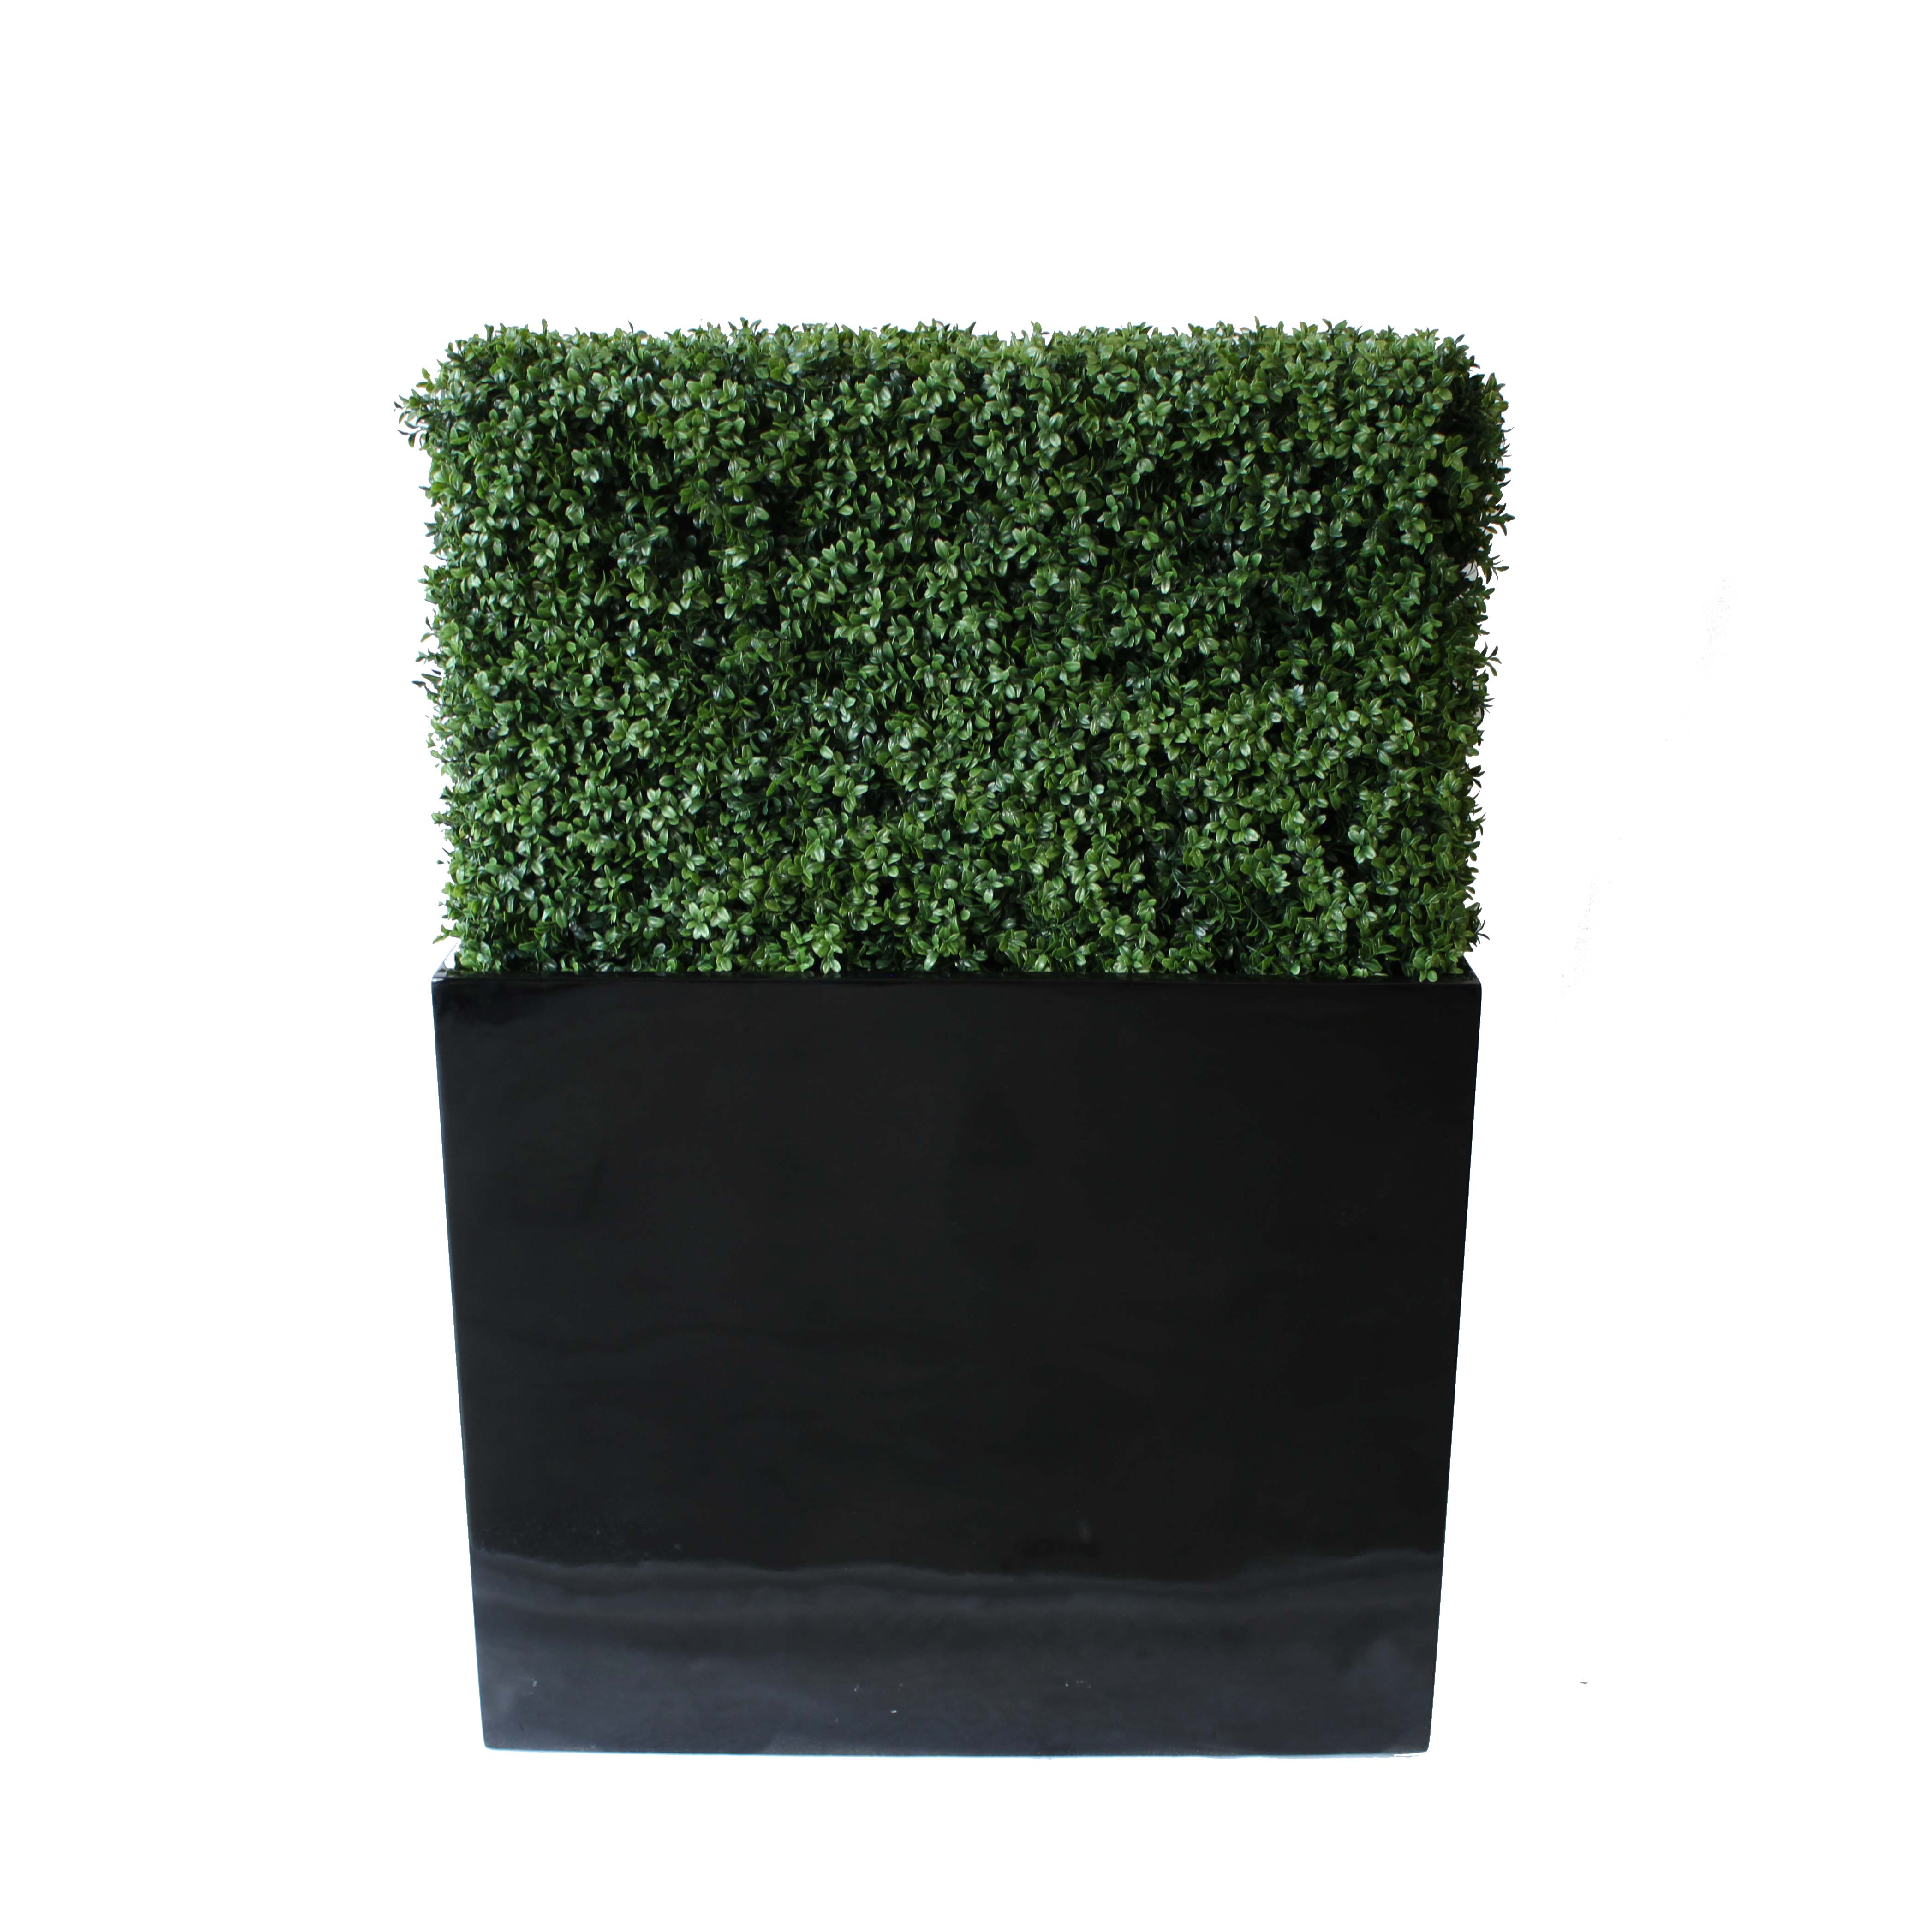 PREMIUM DELUXE BOXWOOD HEDGE 90 WIDE X 115CM TALL WITH FIBREGLASS TROUGH